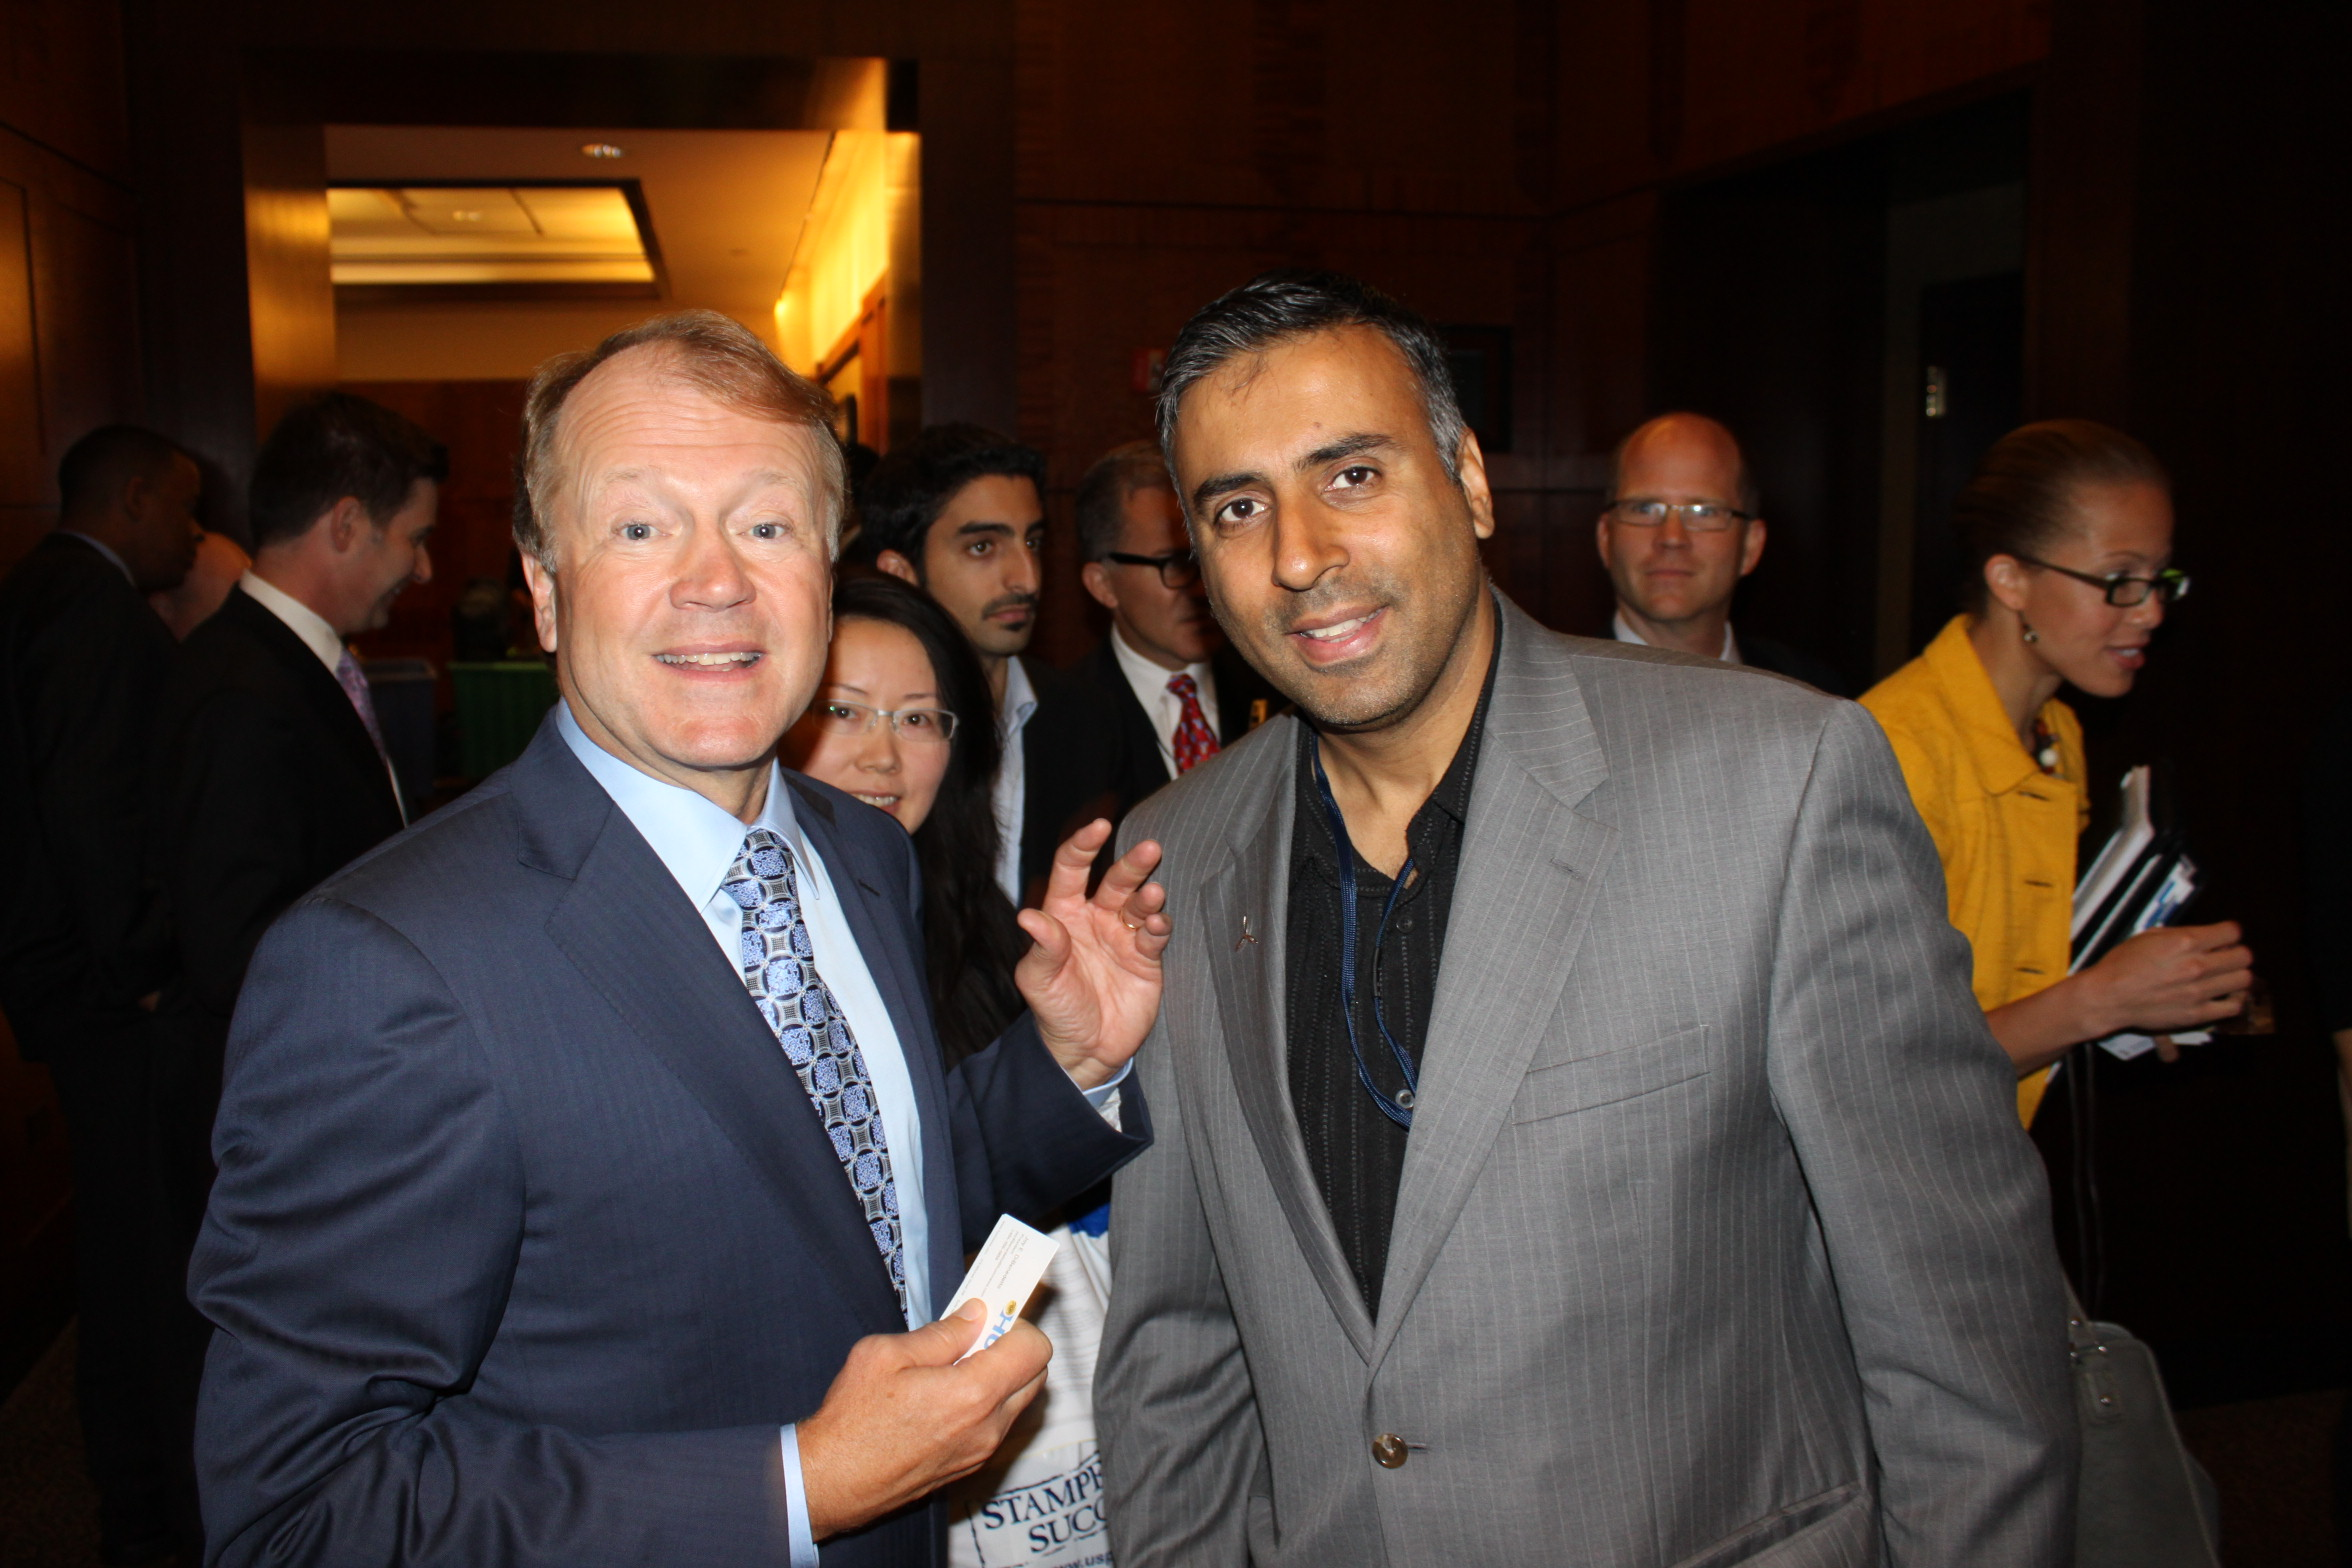 Dr.Abbey with John T. Chambers CEO of Cisco